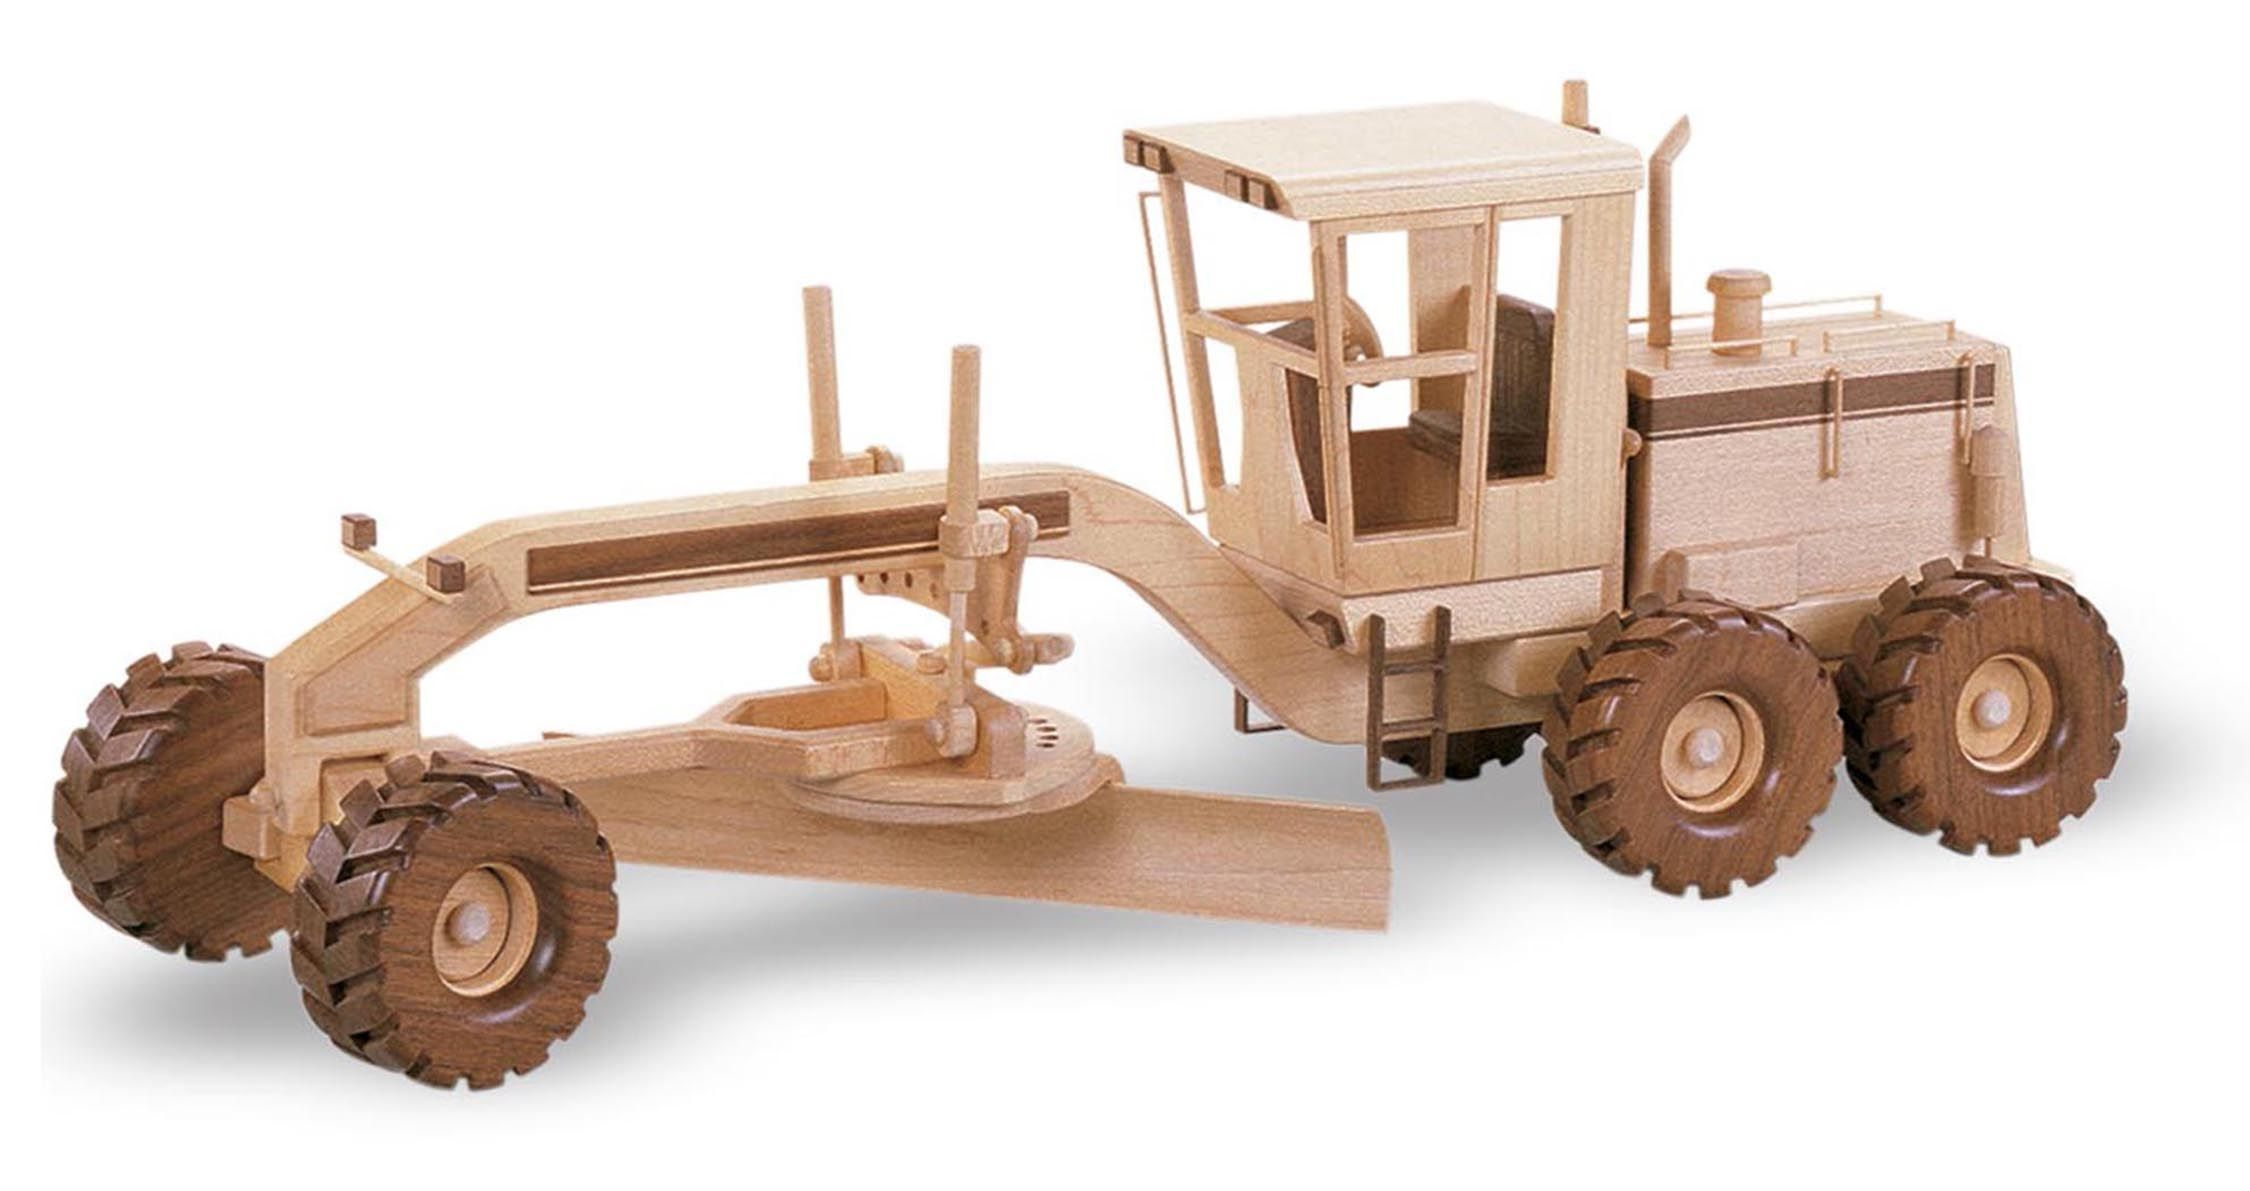 70 The Road Grader Wood Toys Plans Wooden Truck